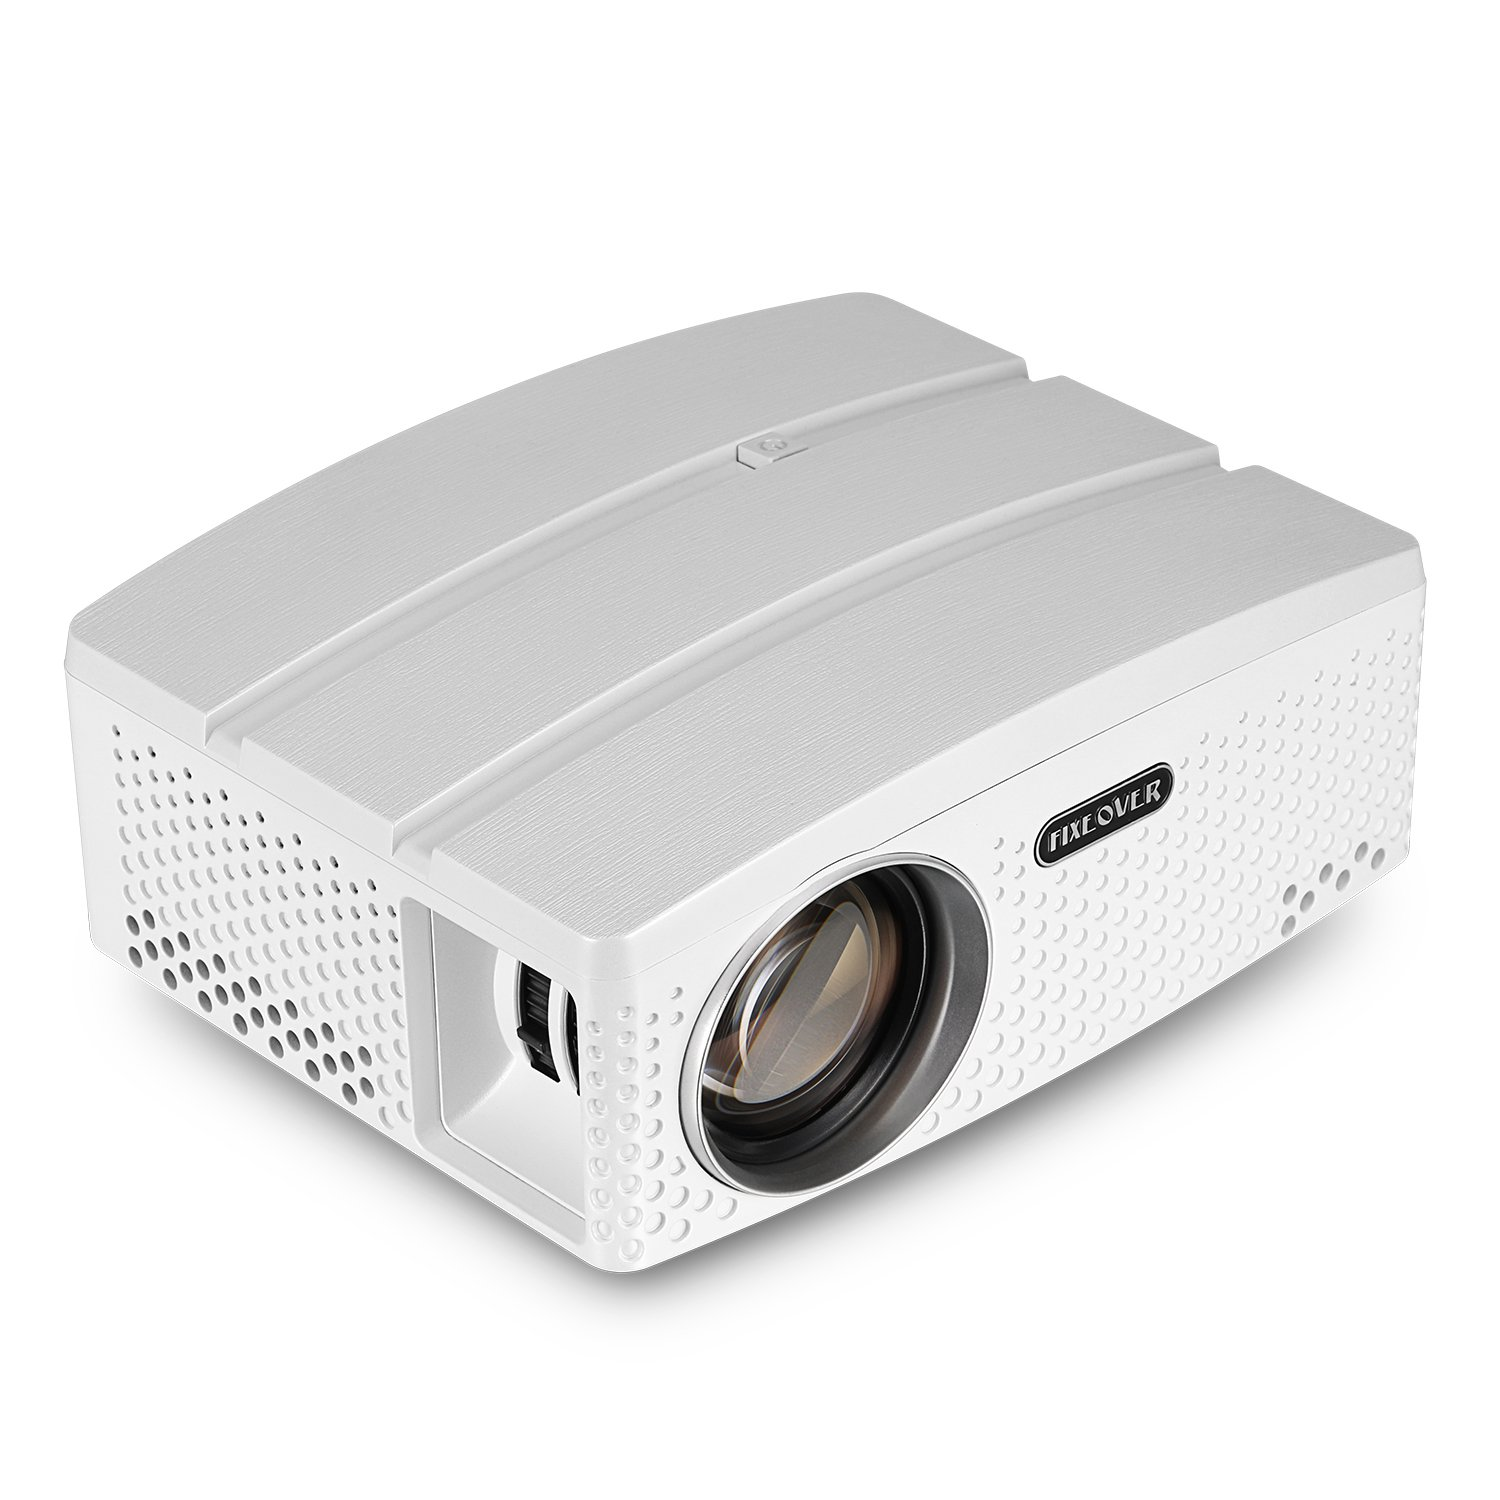 Handheld Portable Game Video Projector Fixeover GP80+ with 1800 Lumens(White Brightness),USB Direct Playback 1080P Video Decoding, Anytime Anywhere Bring Your Life Into the Screen, Connect PS2/XBOX by Fixeover